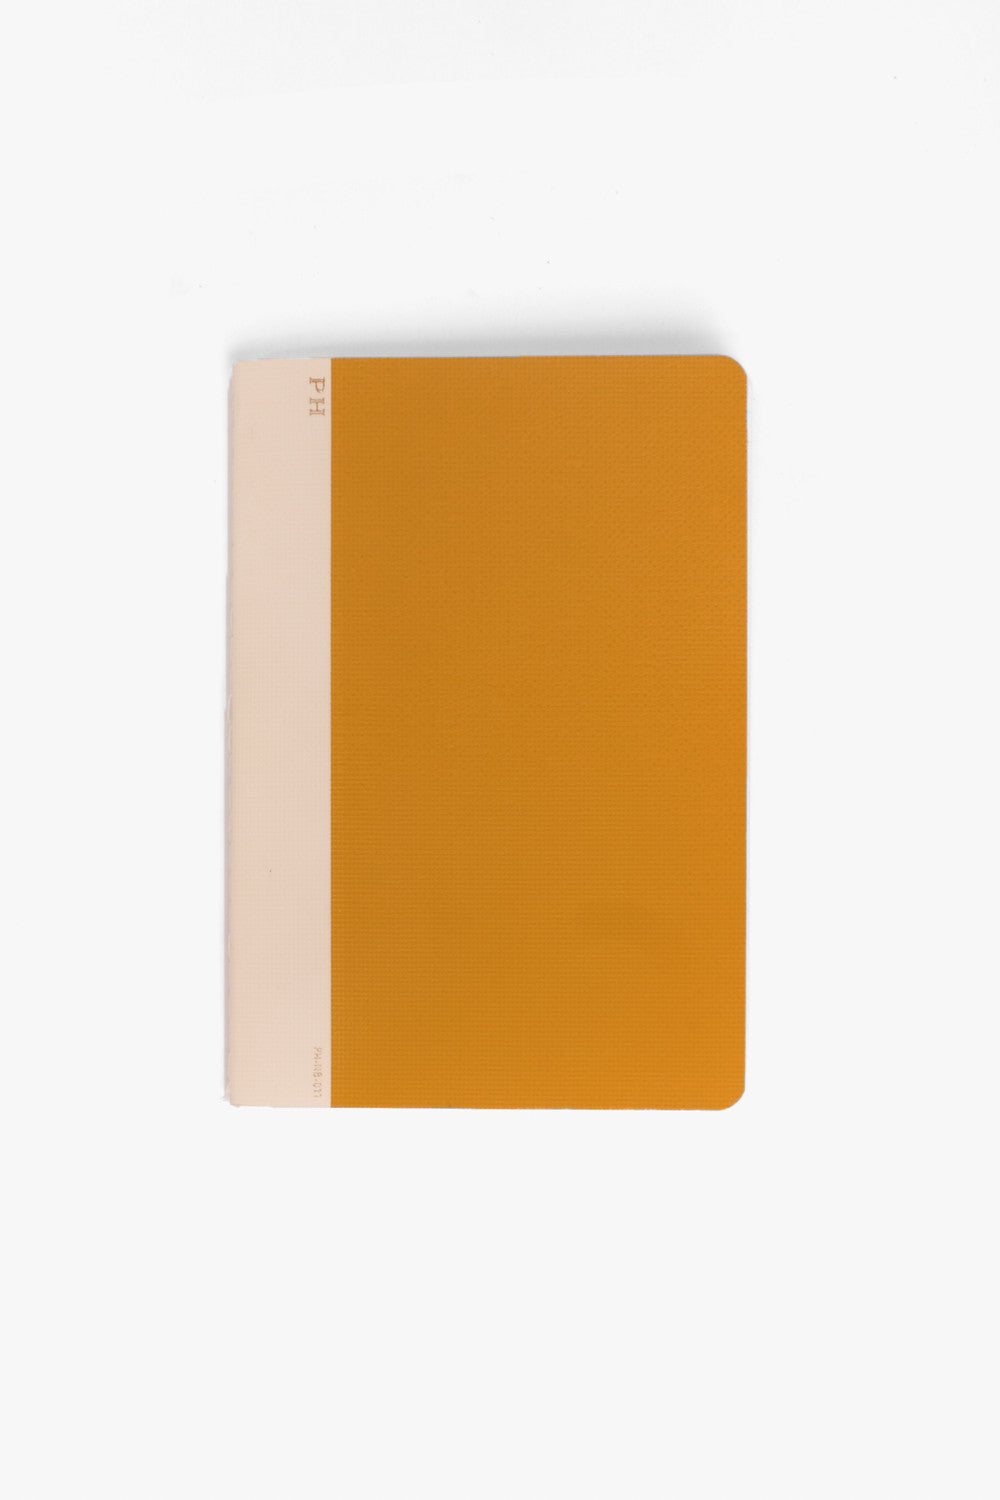 Cheescloth Notebook B6 Yellow, Office, Hightide - Six and Sons